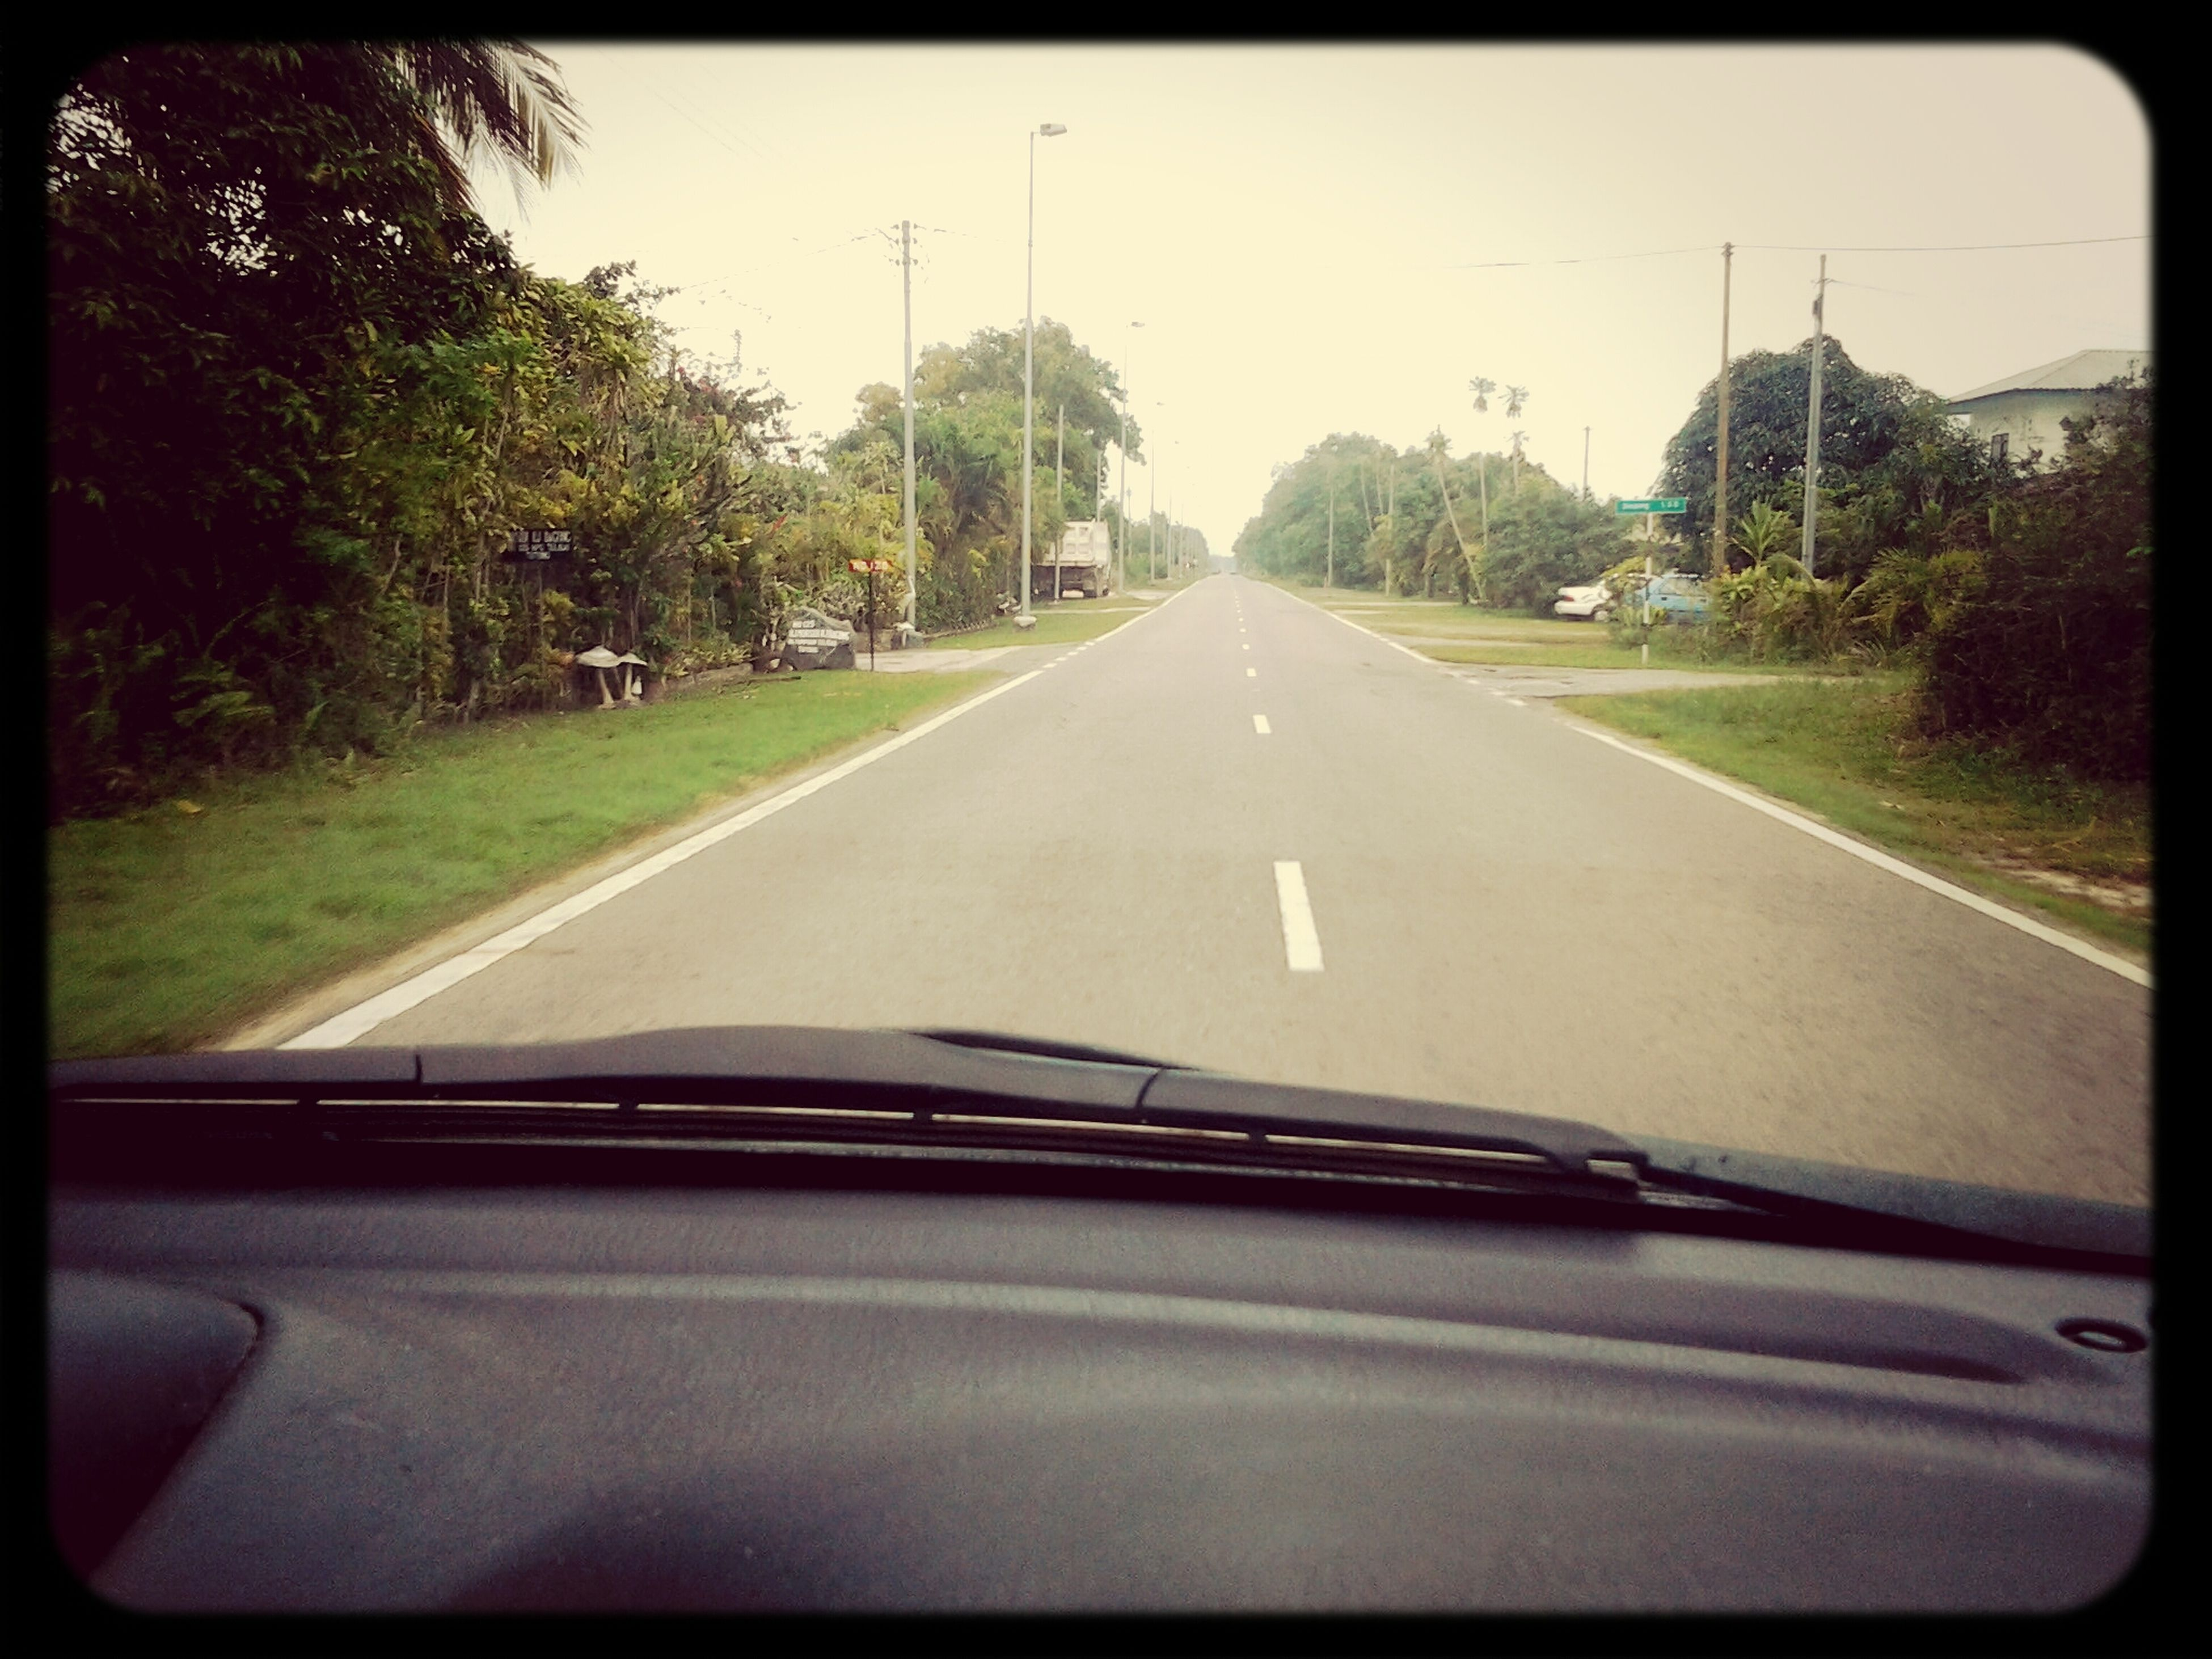 what a lonely road